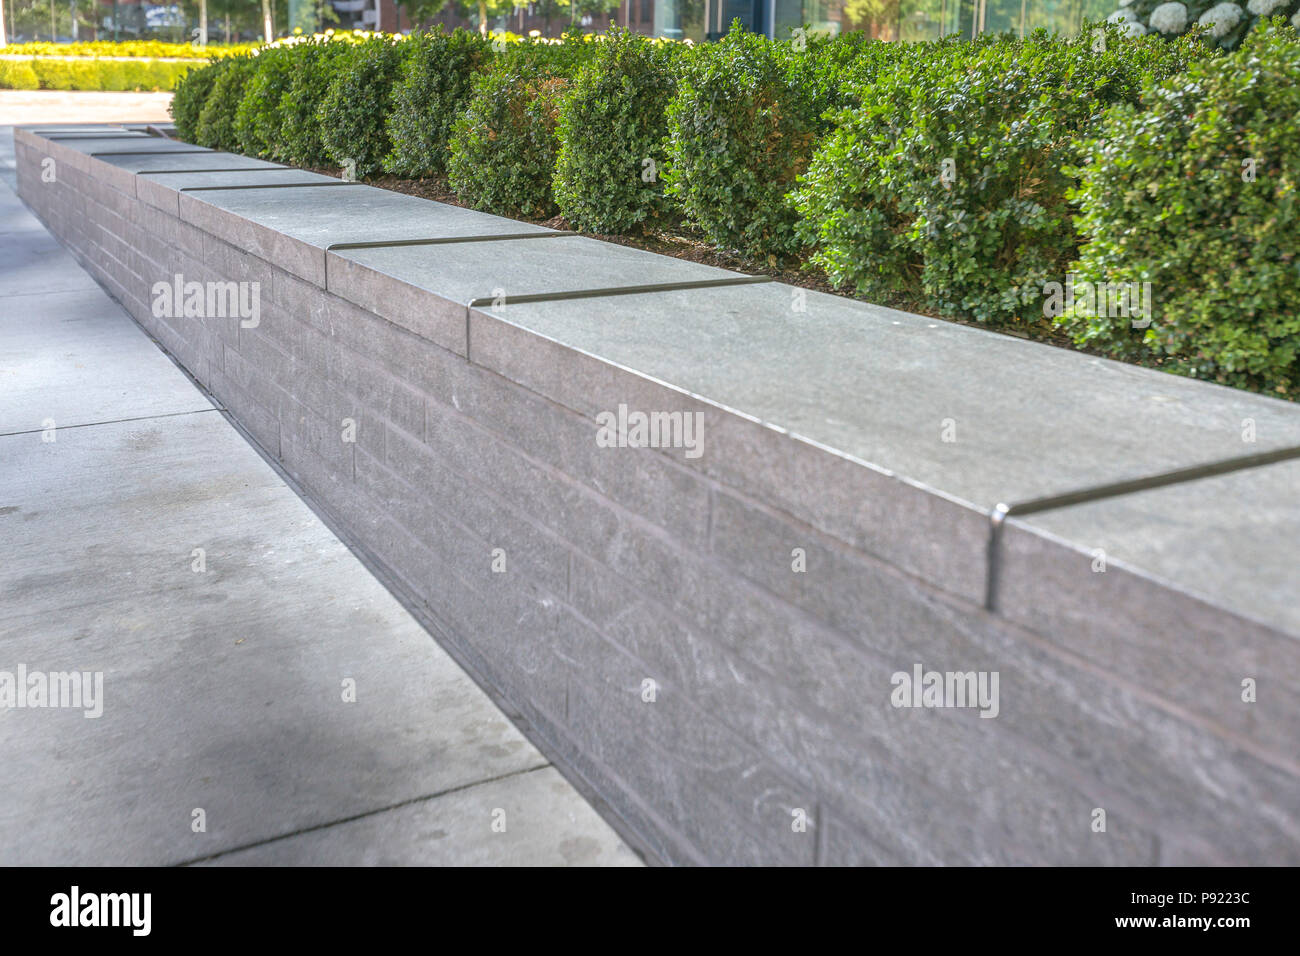 Metal gaurds on the edge of concrete planter - Stock Image